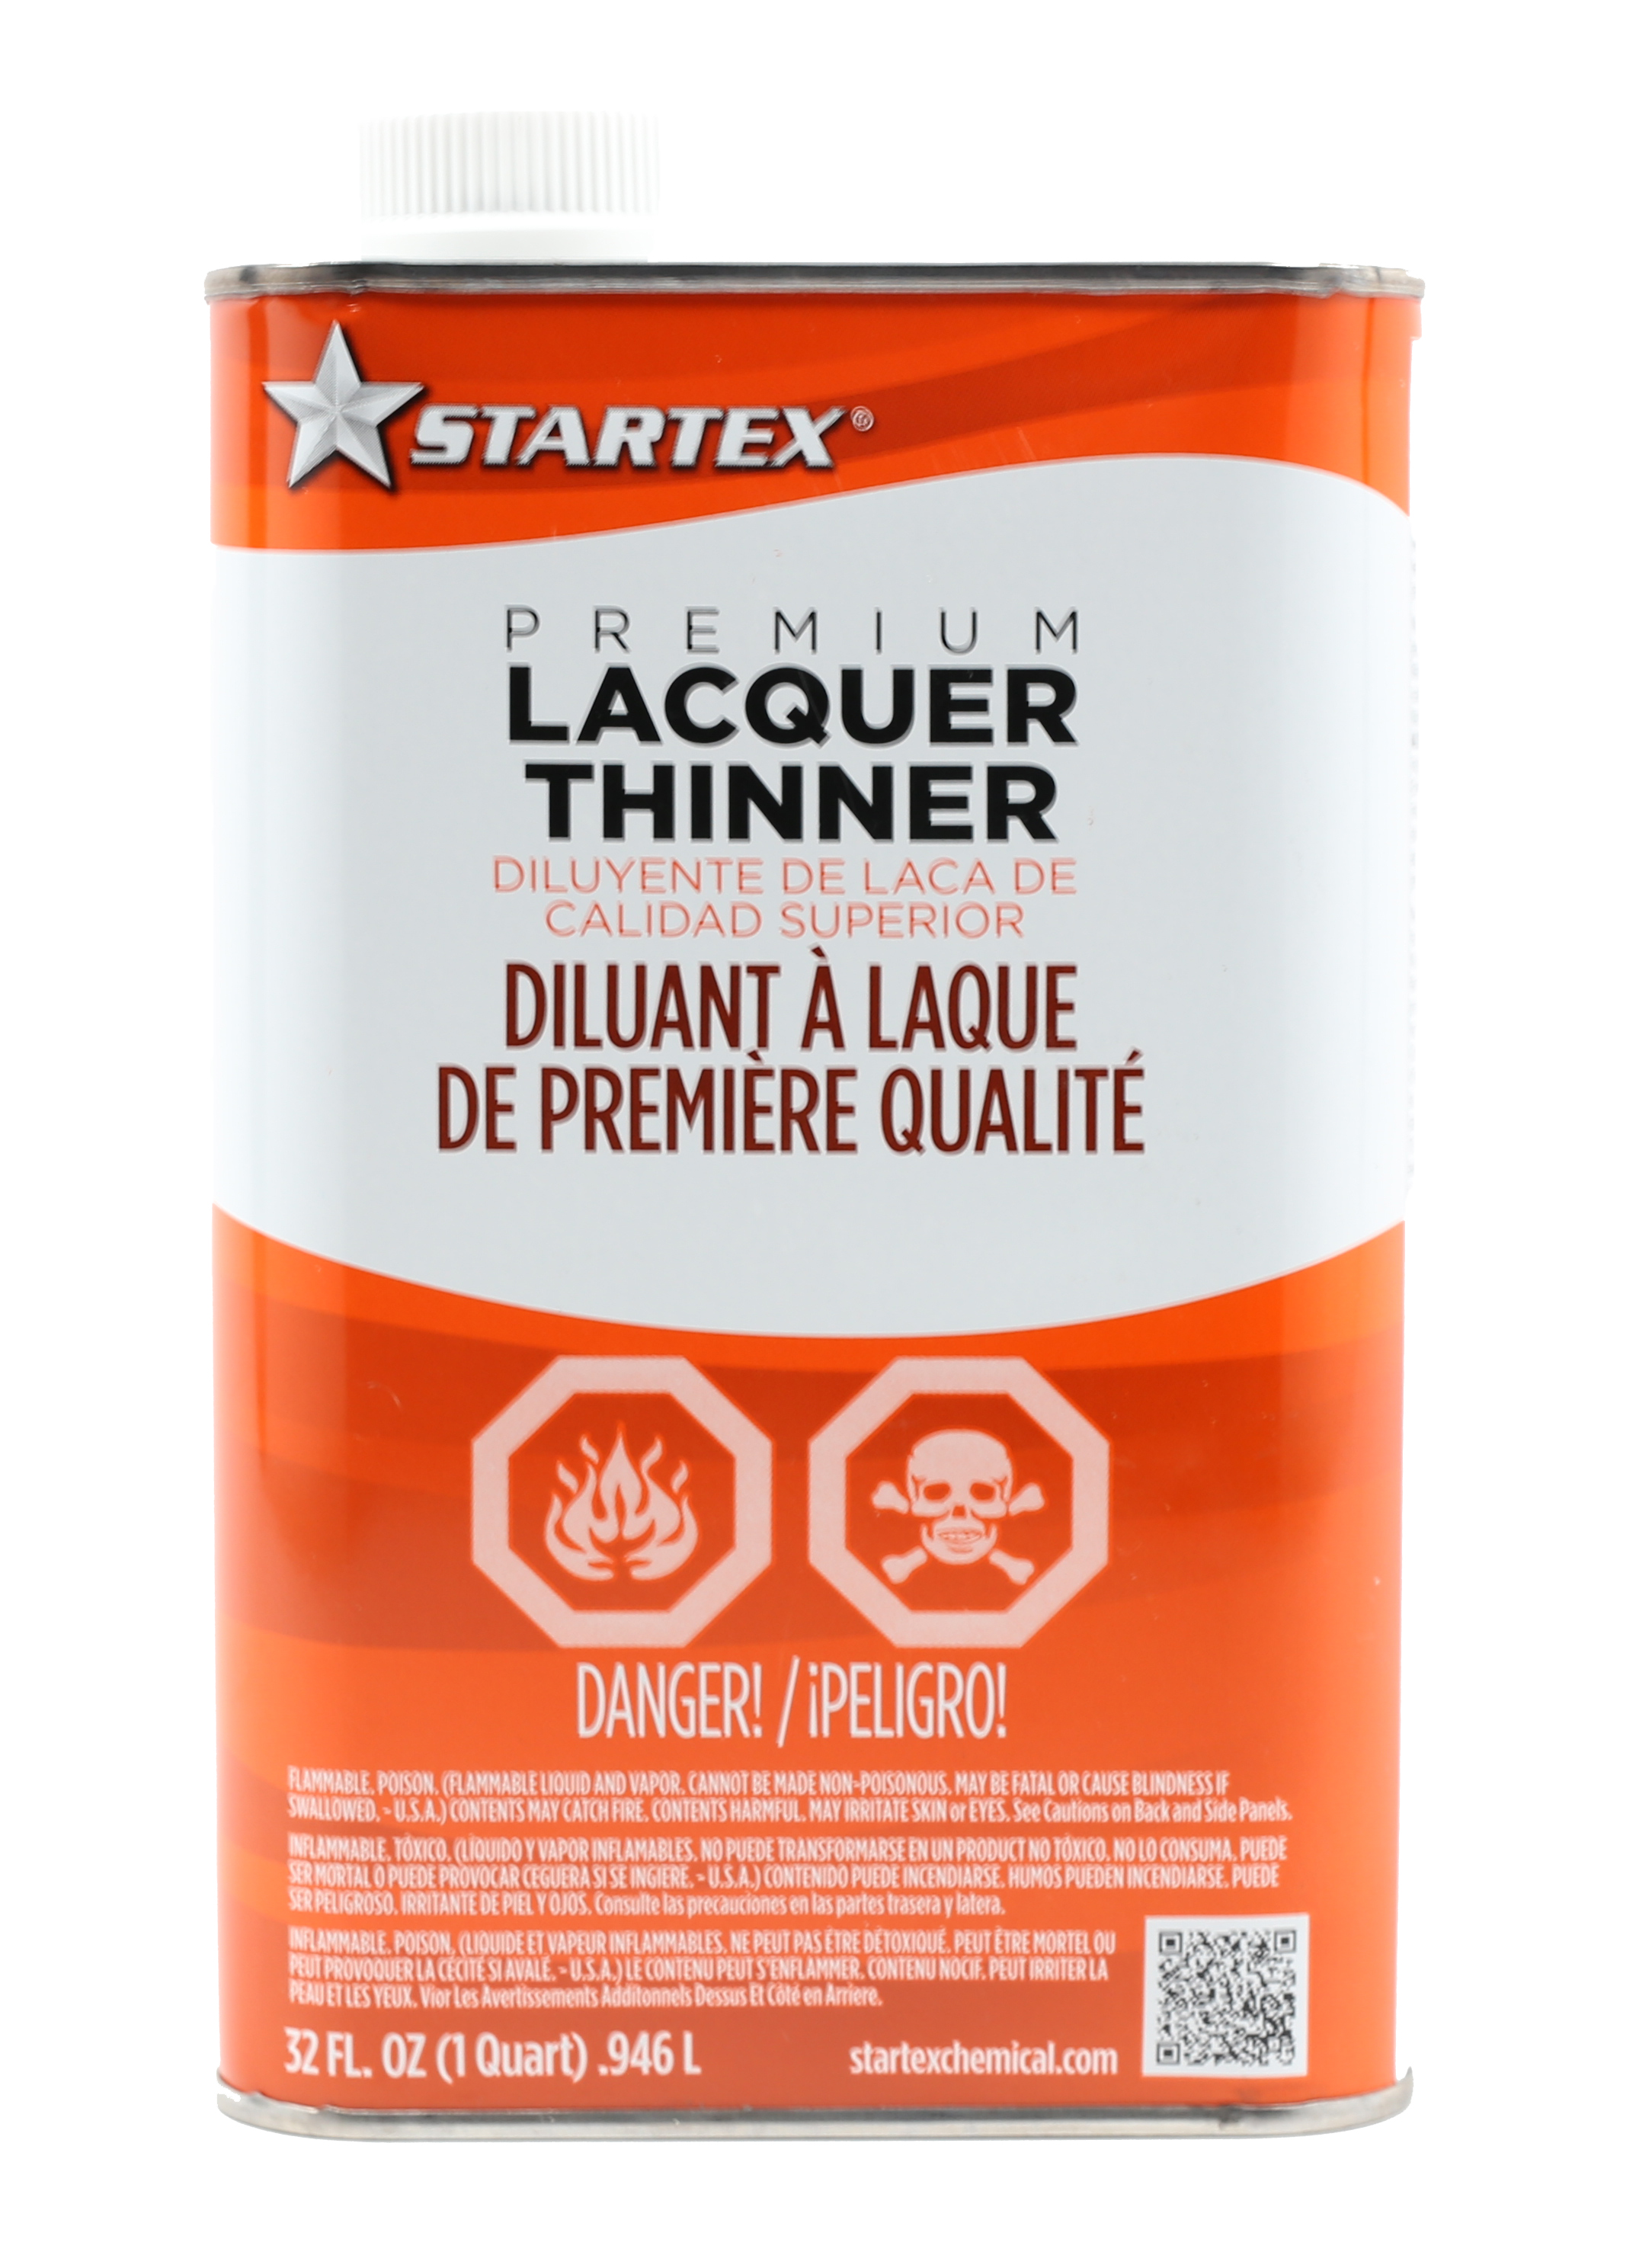 one quart lacquer thinner for paint application and clean up